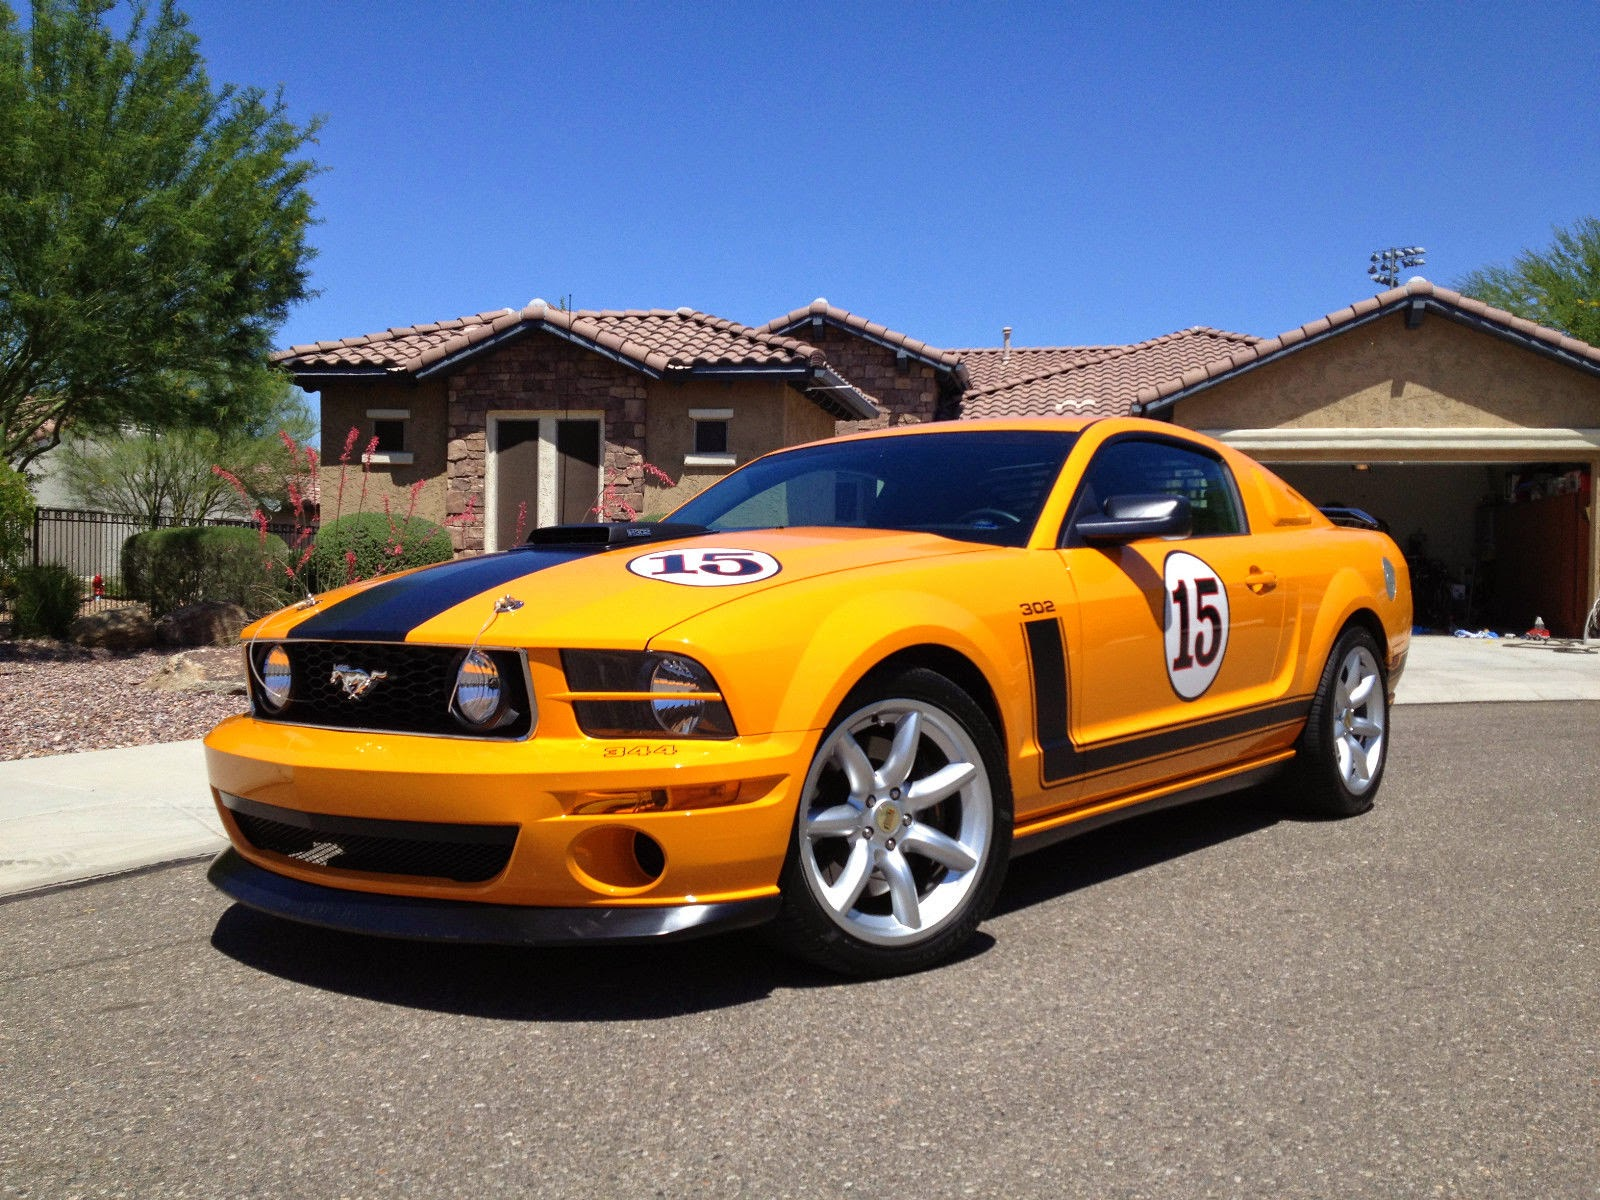 For sale 2007 500 limited edition parnelli jones steve saleen ford mustang boss 302